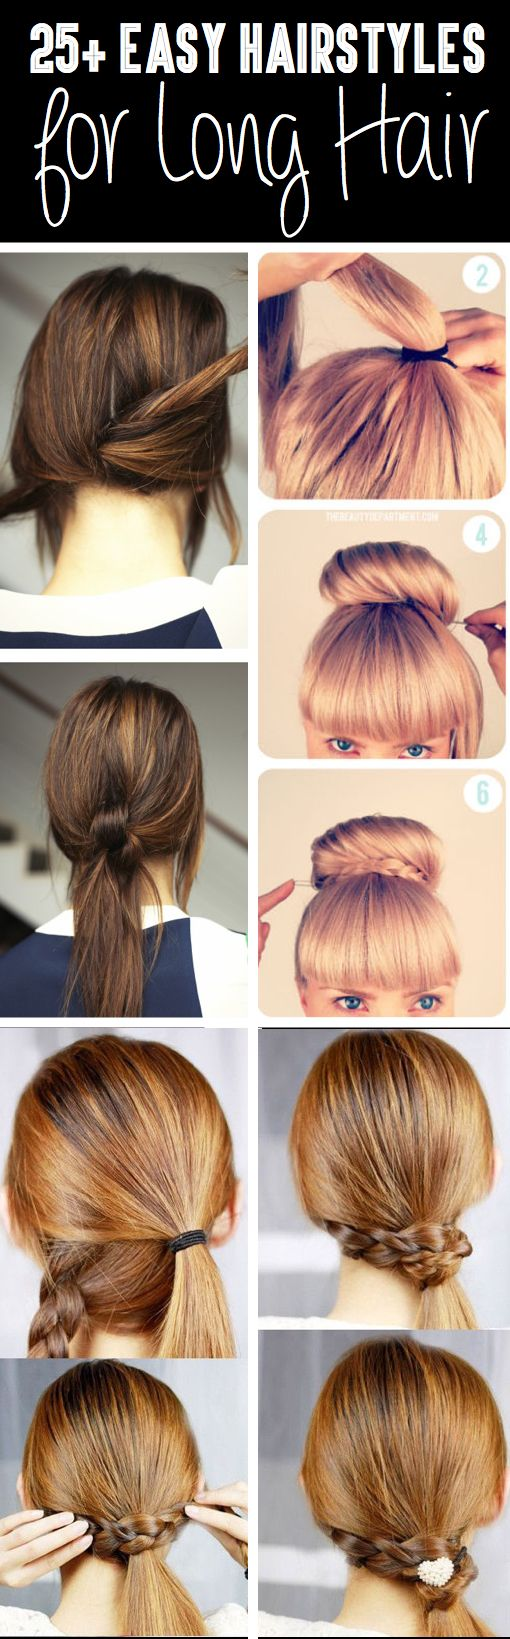 Beautiful From Classy To Cute: 25+ Easy Hairstyles For Long Hair